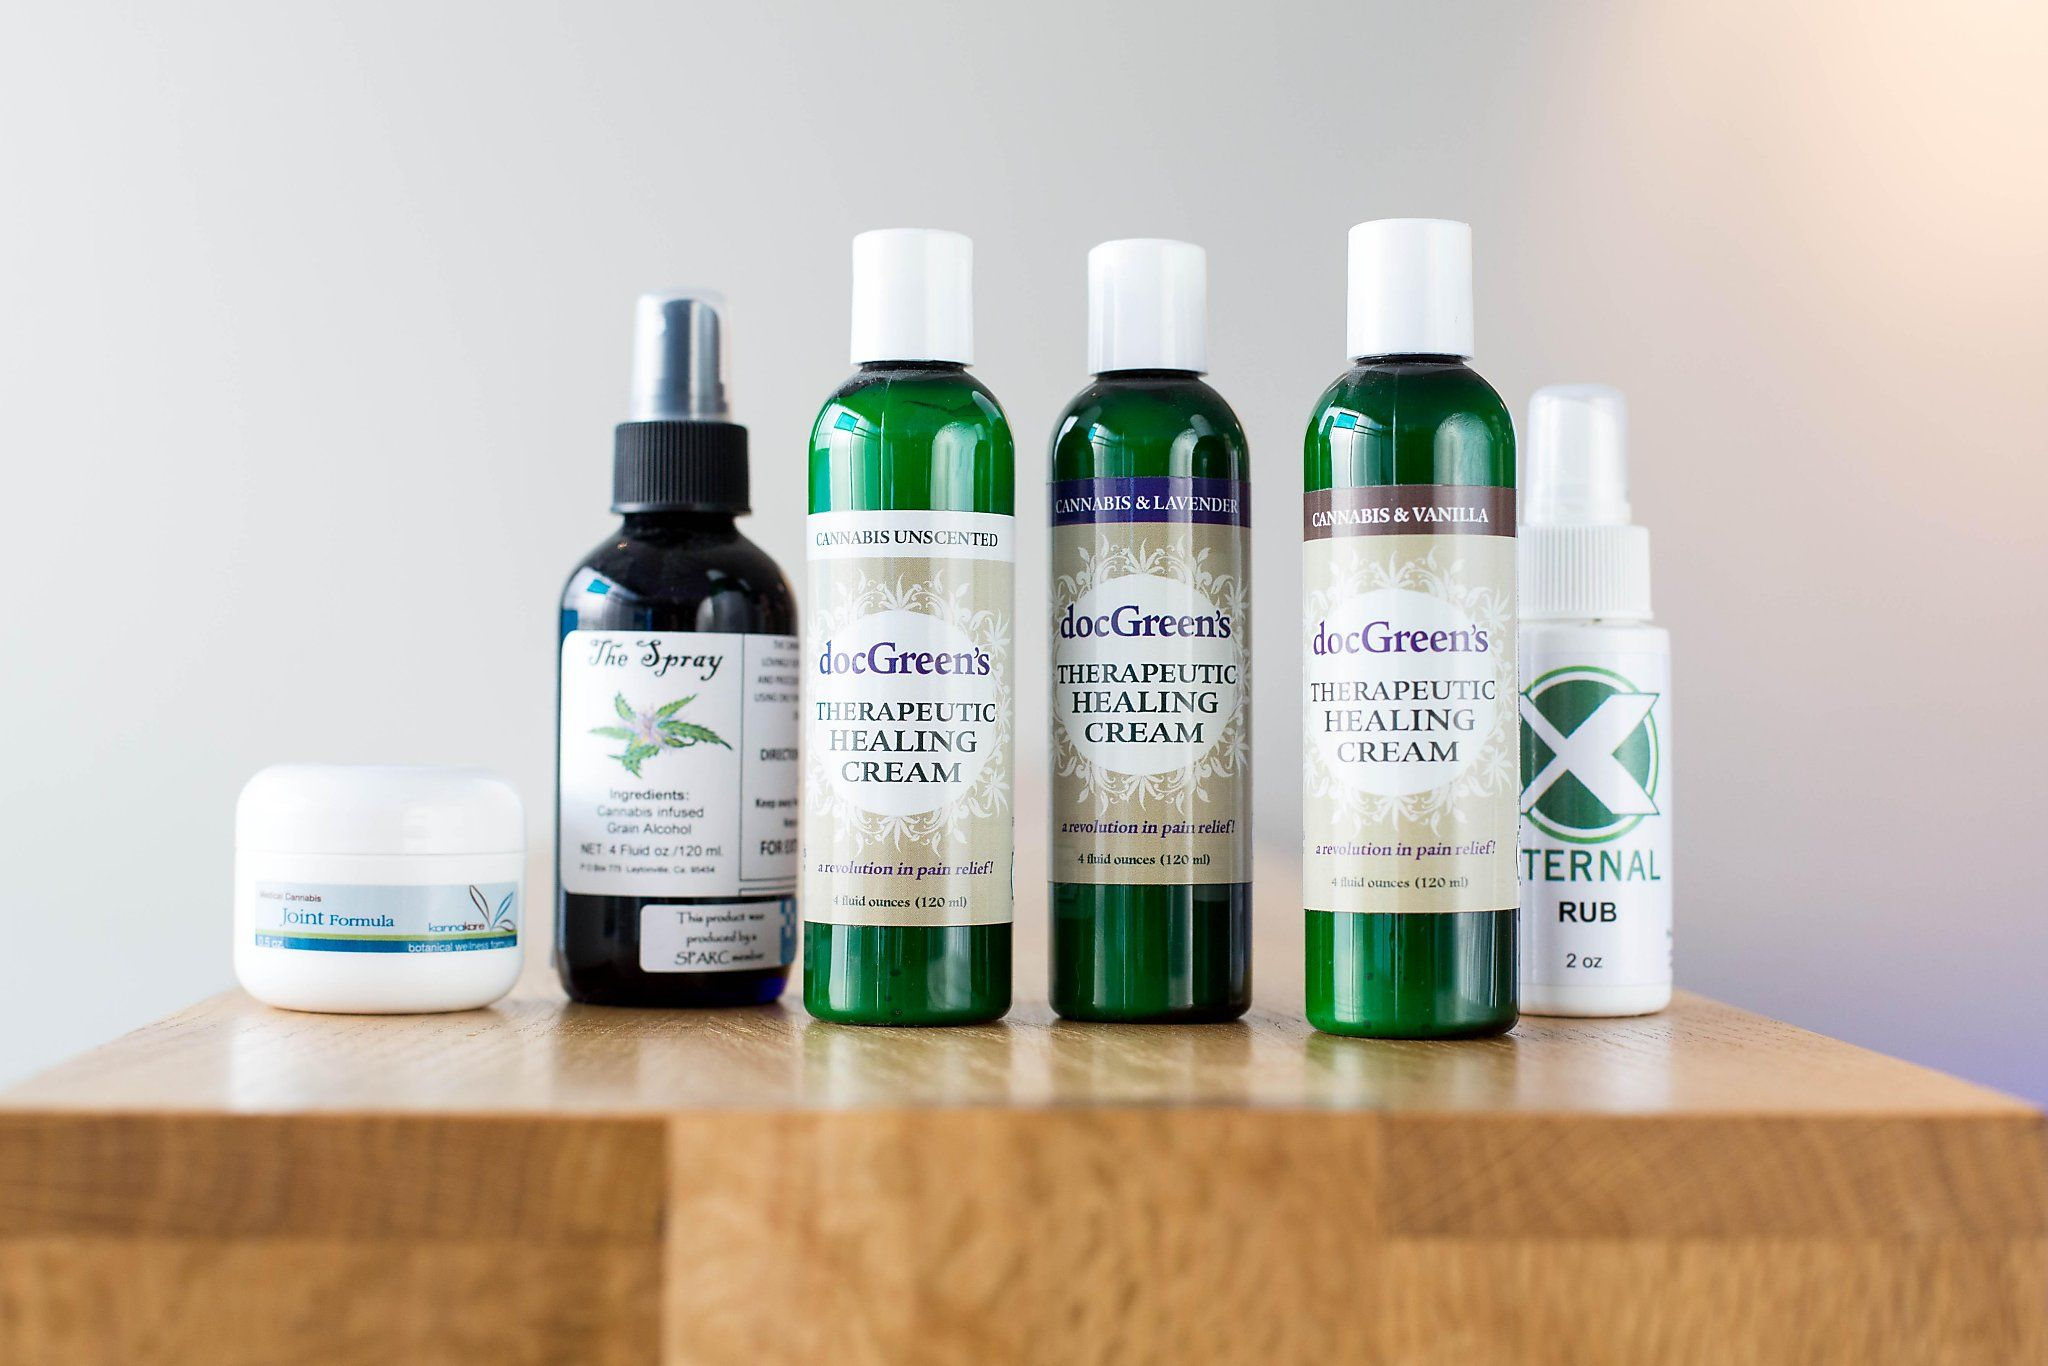 'Gateway' to cannabis relief: Topicals get to the bottom of aches, pains